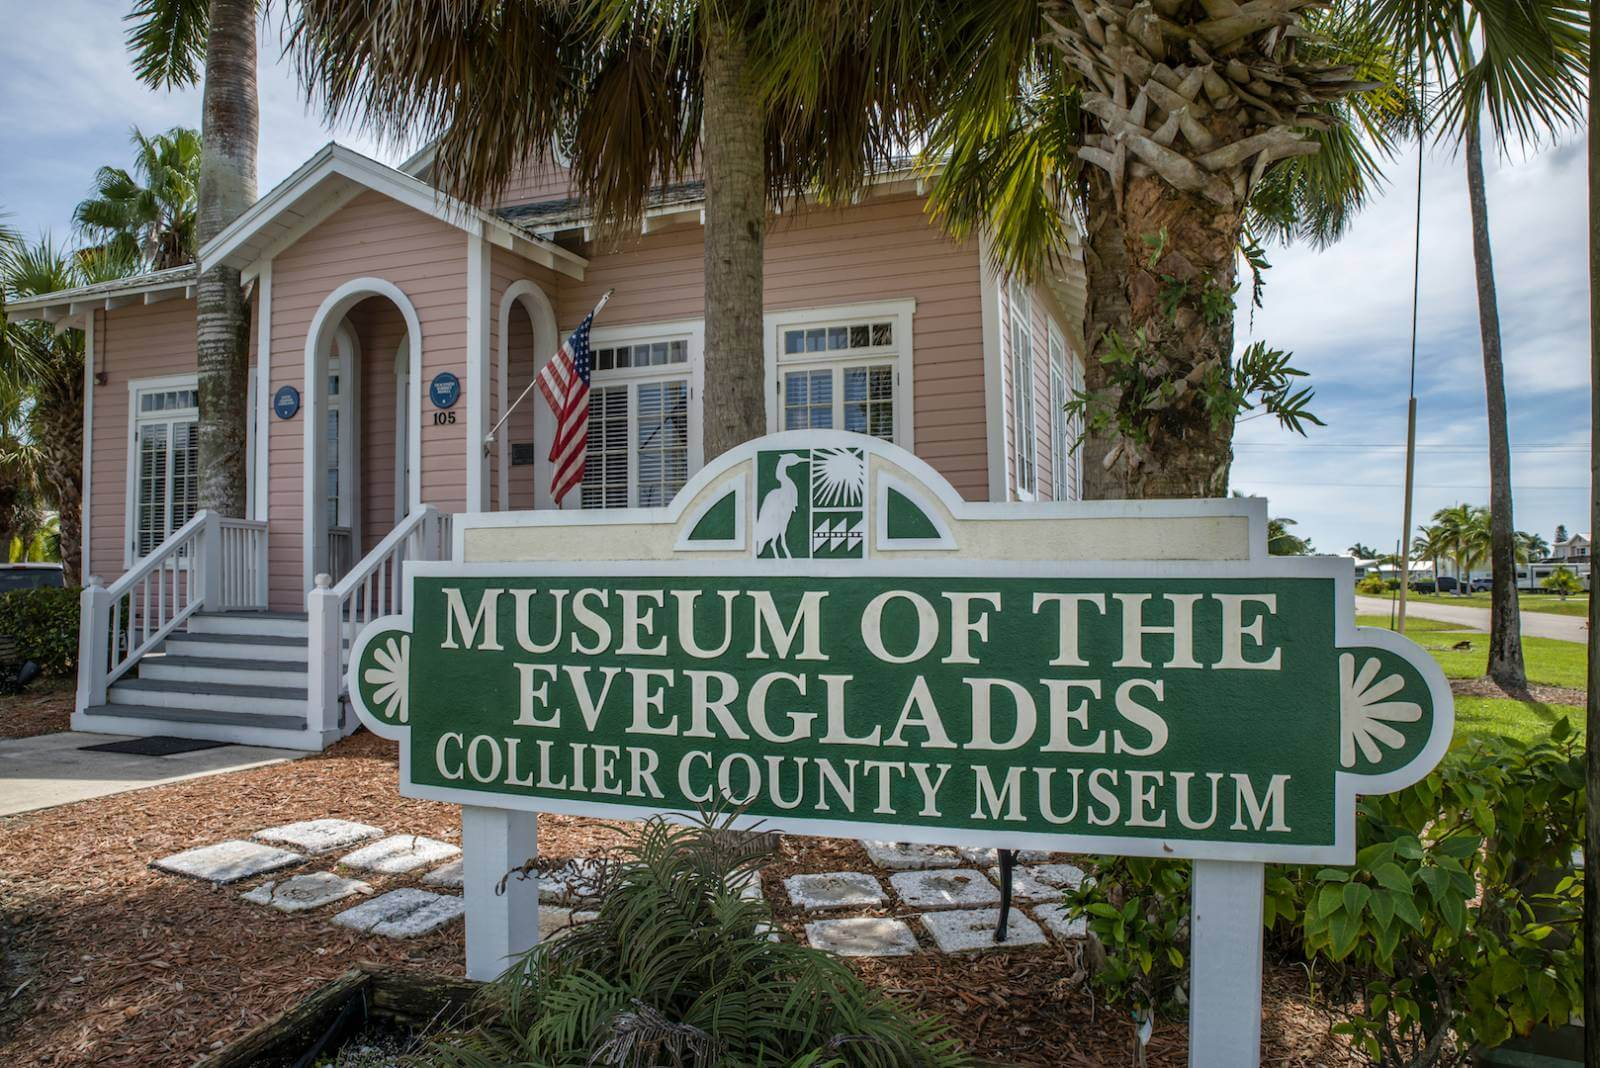 Surprising Facts About Naples, Marco Island and Everglades City. The fascinating Museum of the Everglades is located in the former laundry building in historic Everglades City. It tells the story of how the Tamiami Trail was built and admission is free. Photo by Jennifer Brinkman